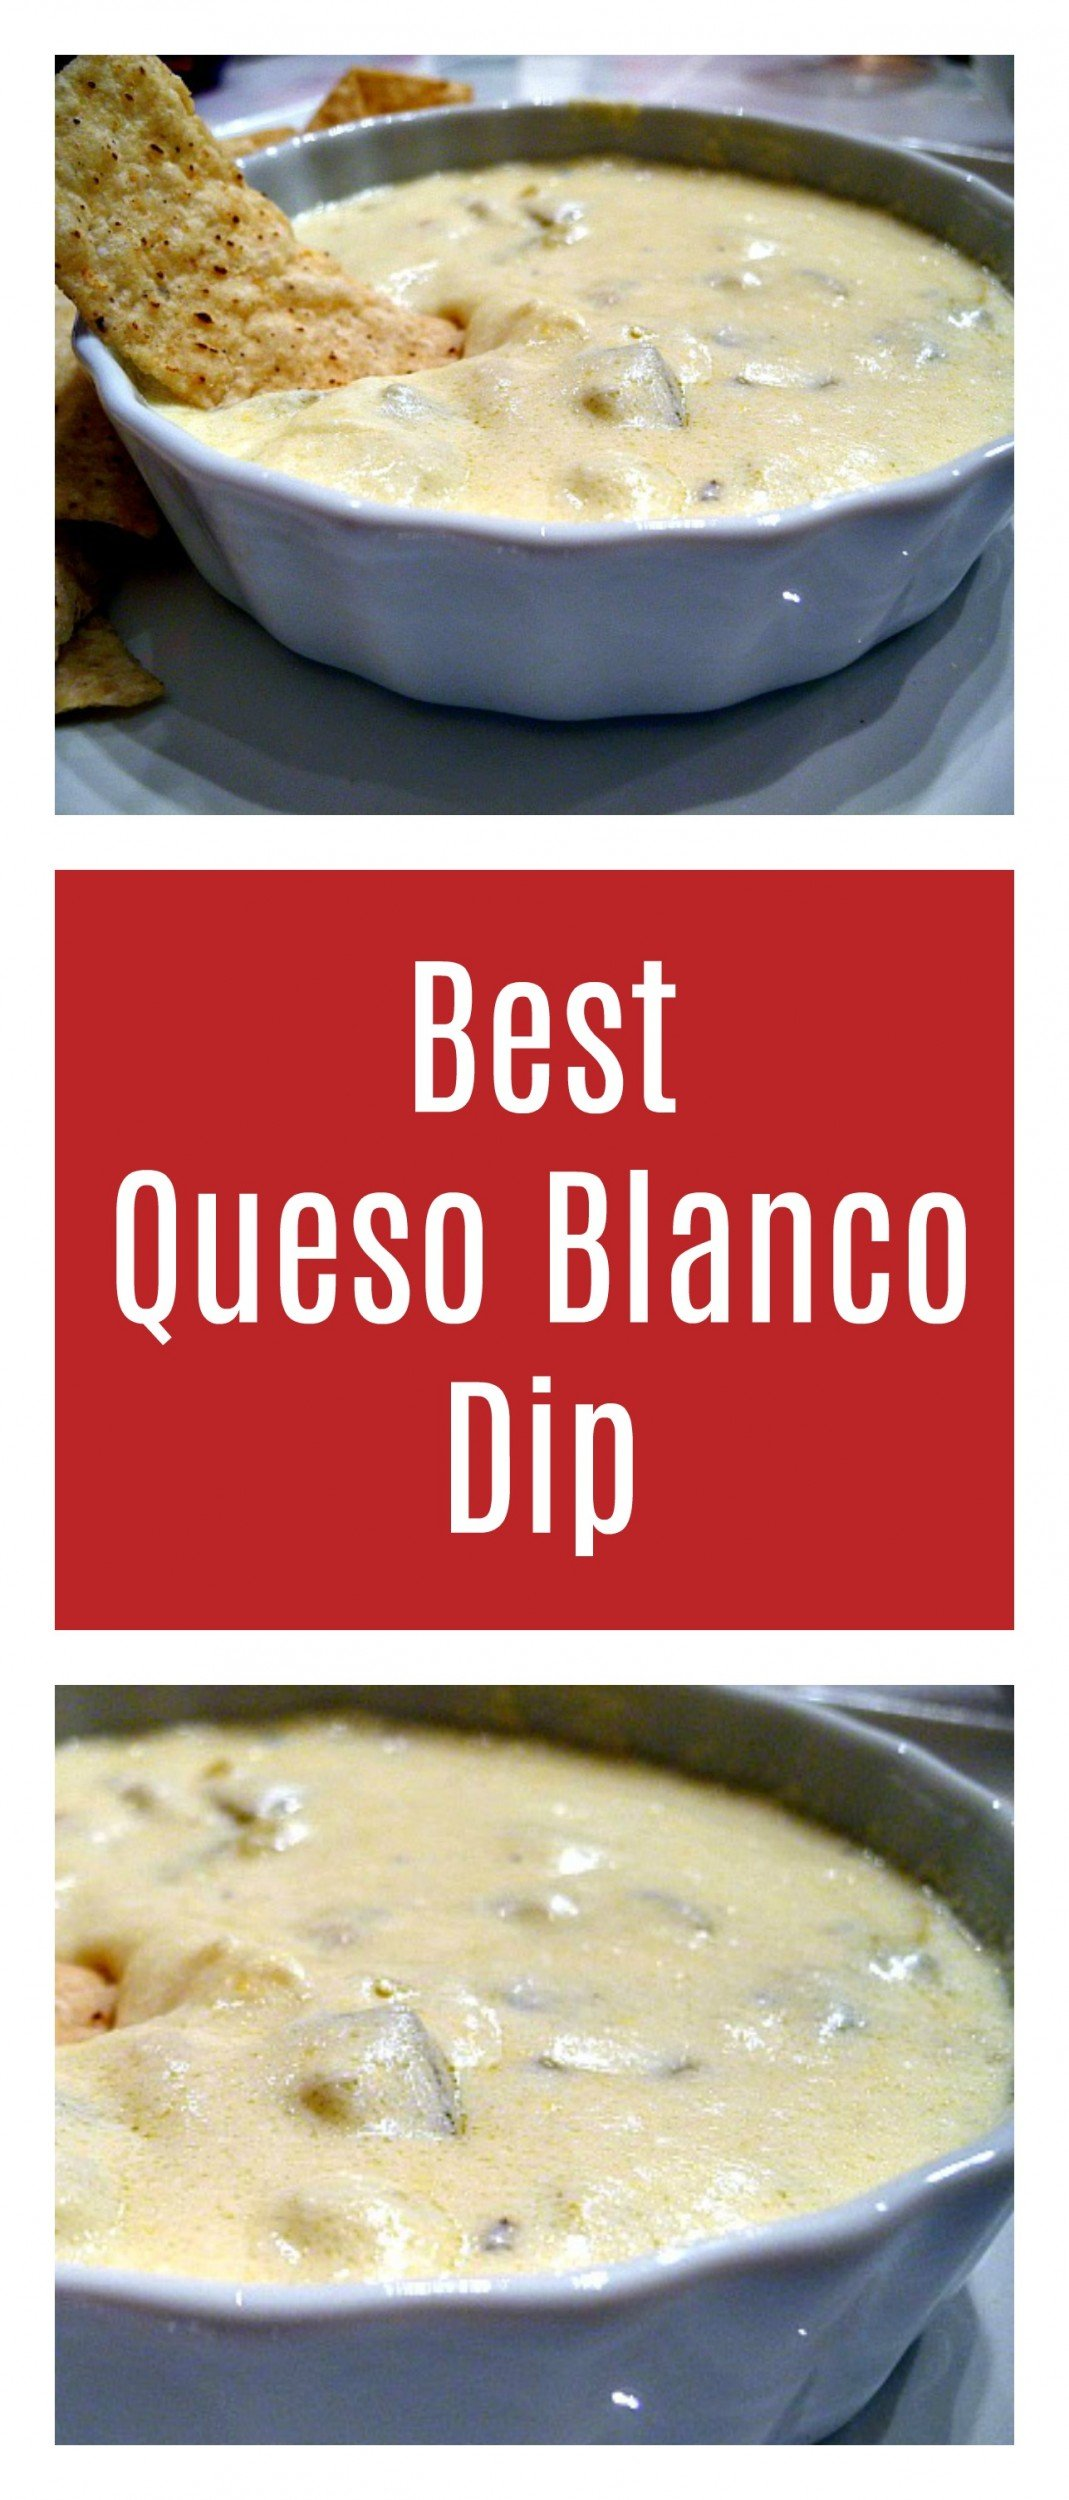 A creamy queso with the spicy bite of jalapeno is adapted from the famous dip at Miguel's Cocina in San Diego.